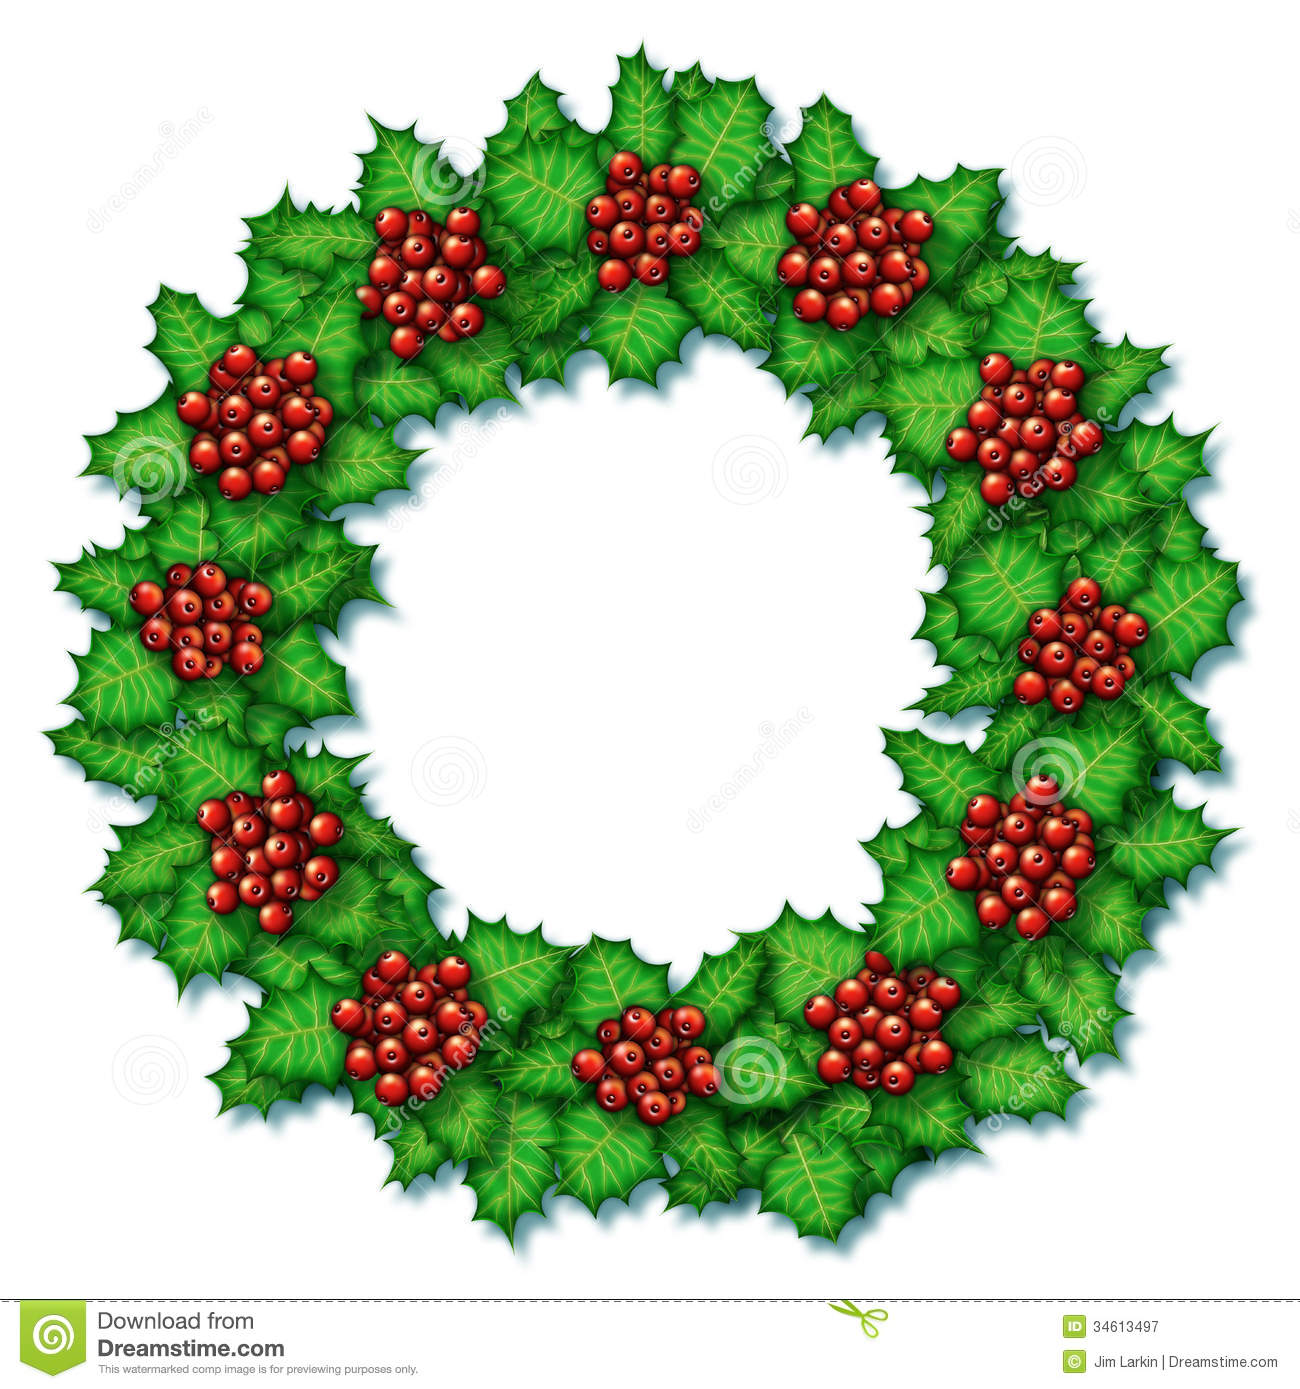 Holly Wreath Royalty Free Stock Photography - Image: 34613497